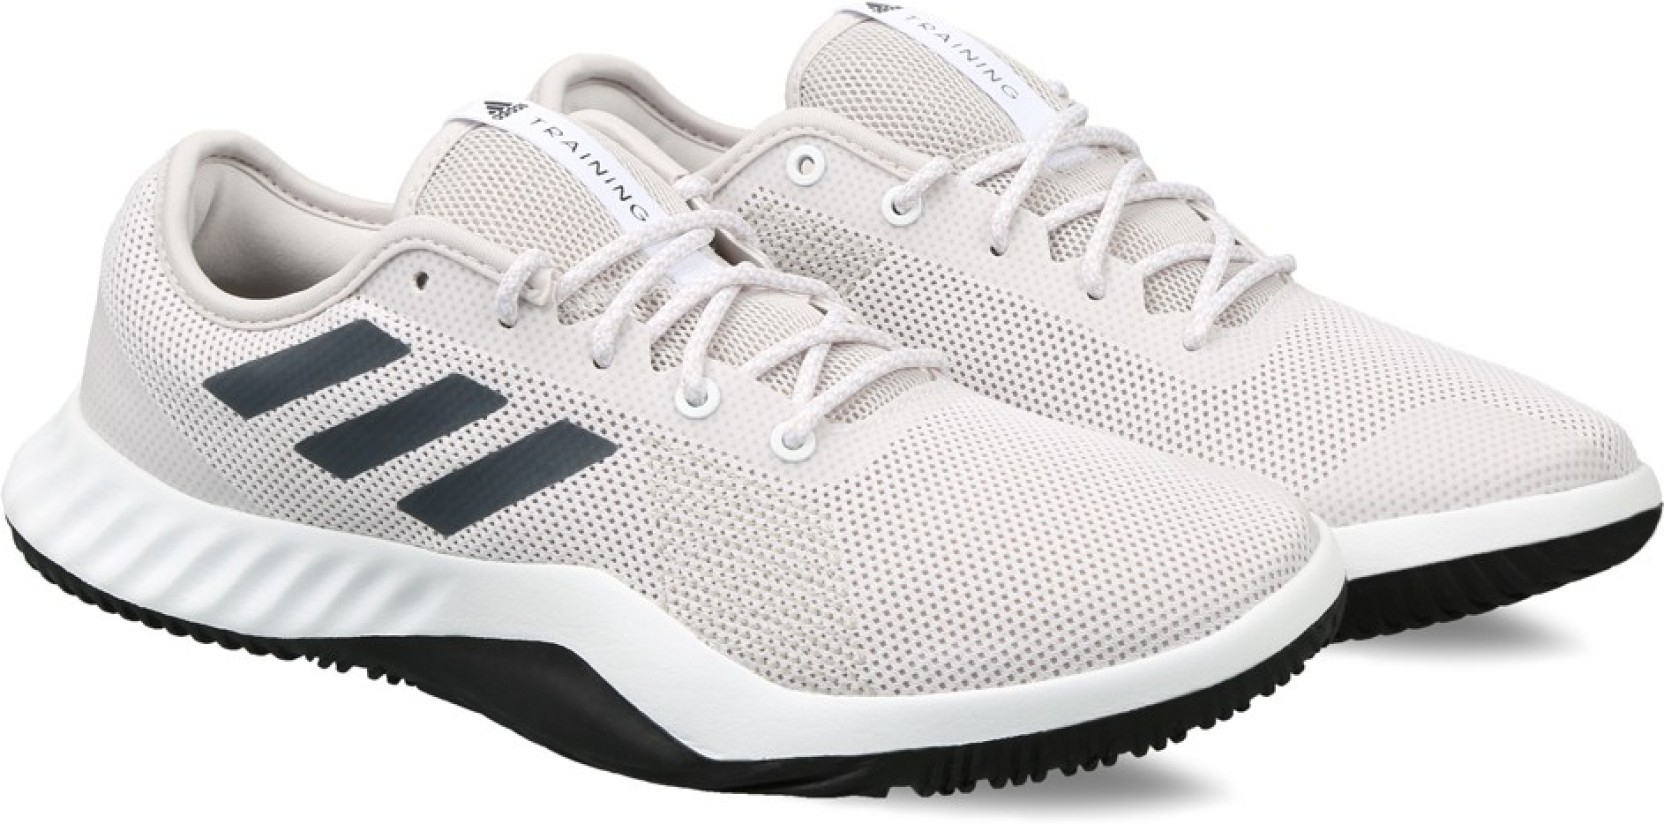 new style 808b8 073f4 ADIDAS CRAZYTRAIN LT M Training Shoes For Men (White)